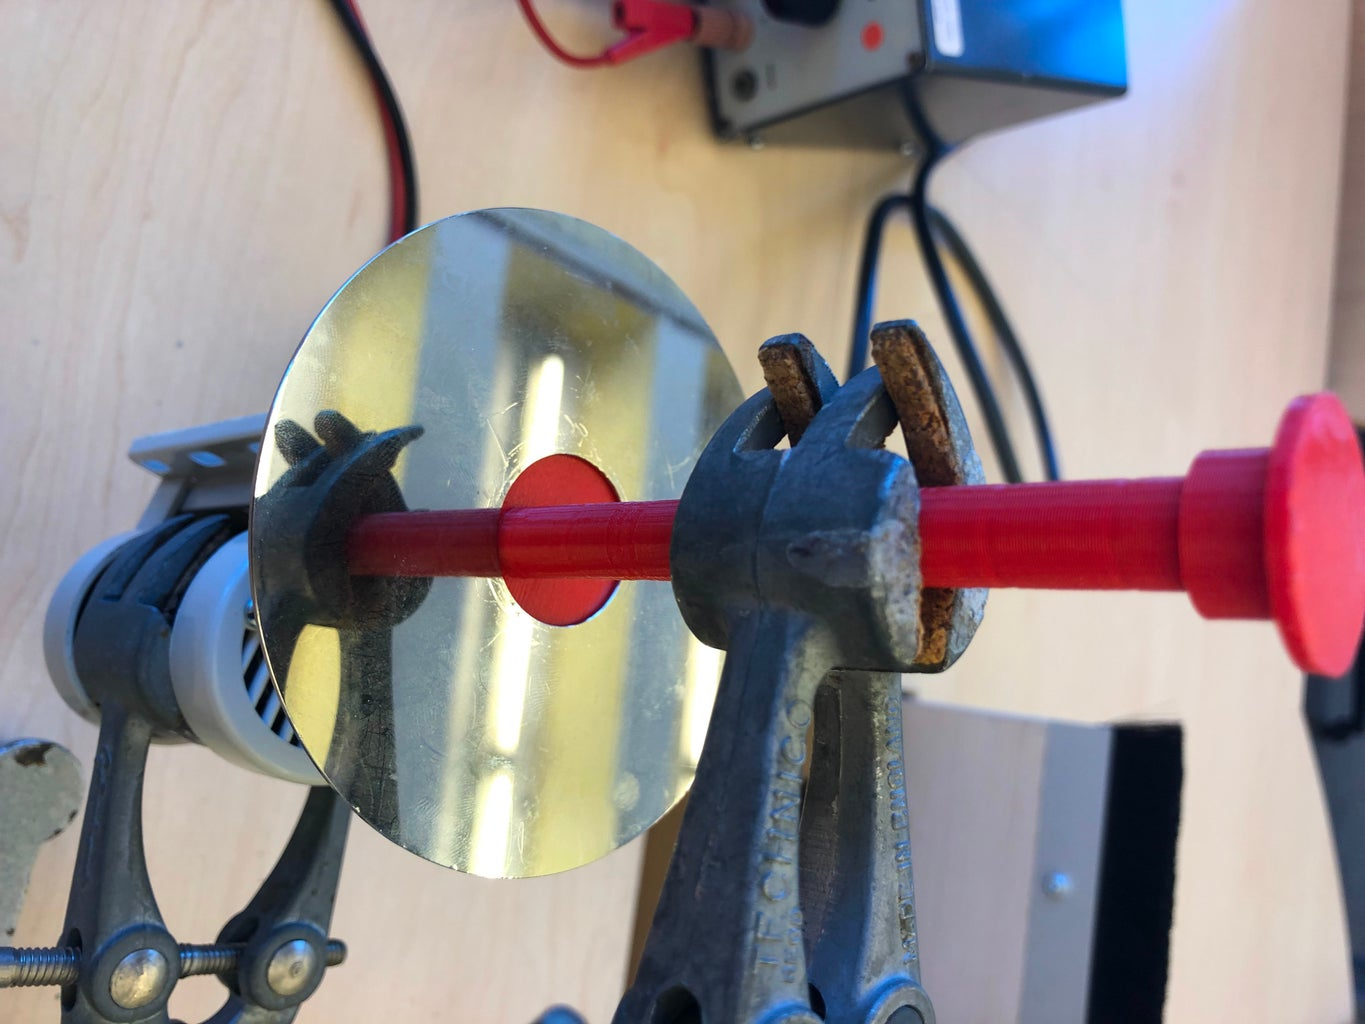 Placing the Disk Above the Motor